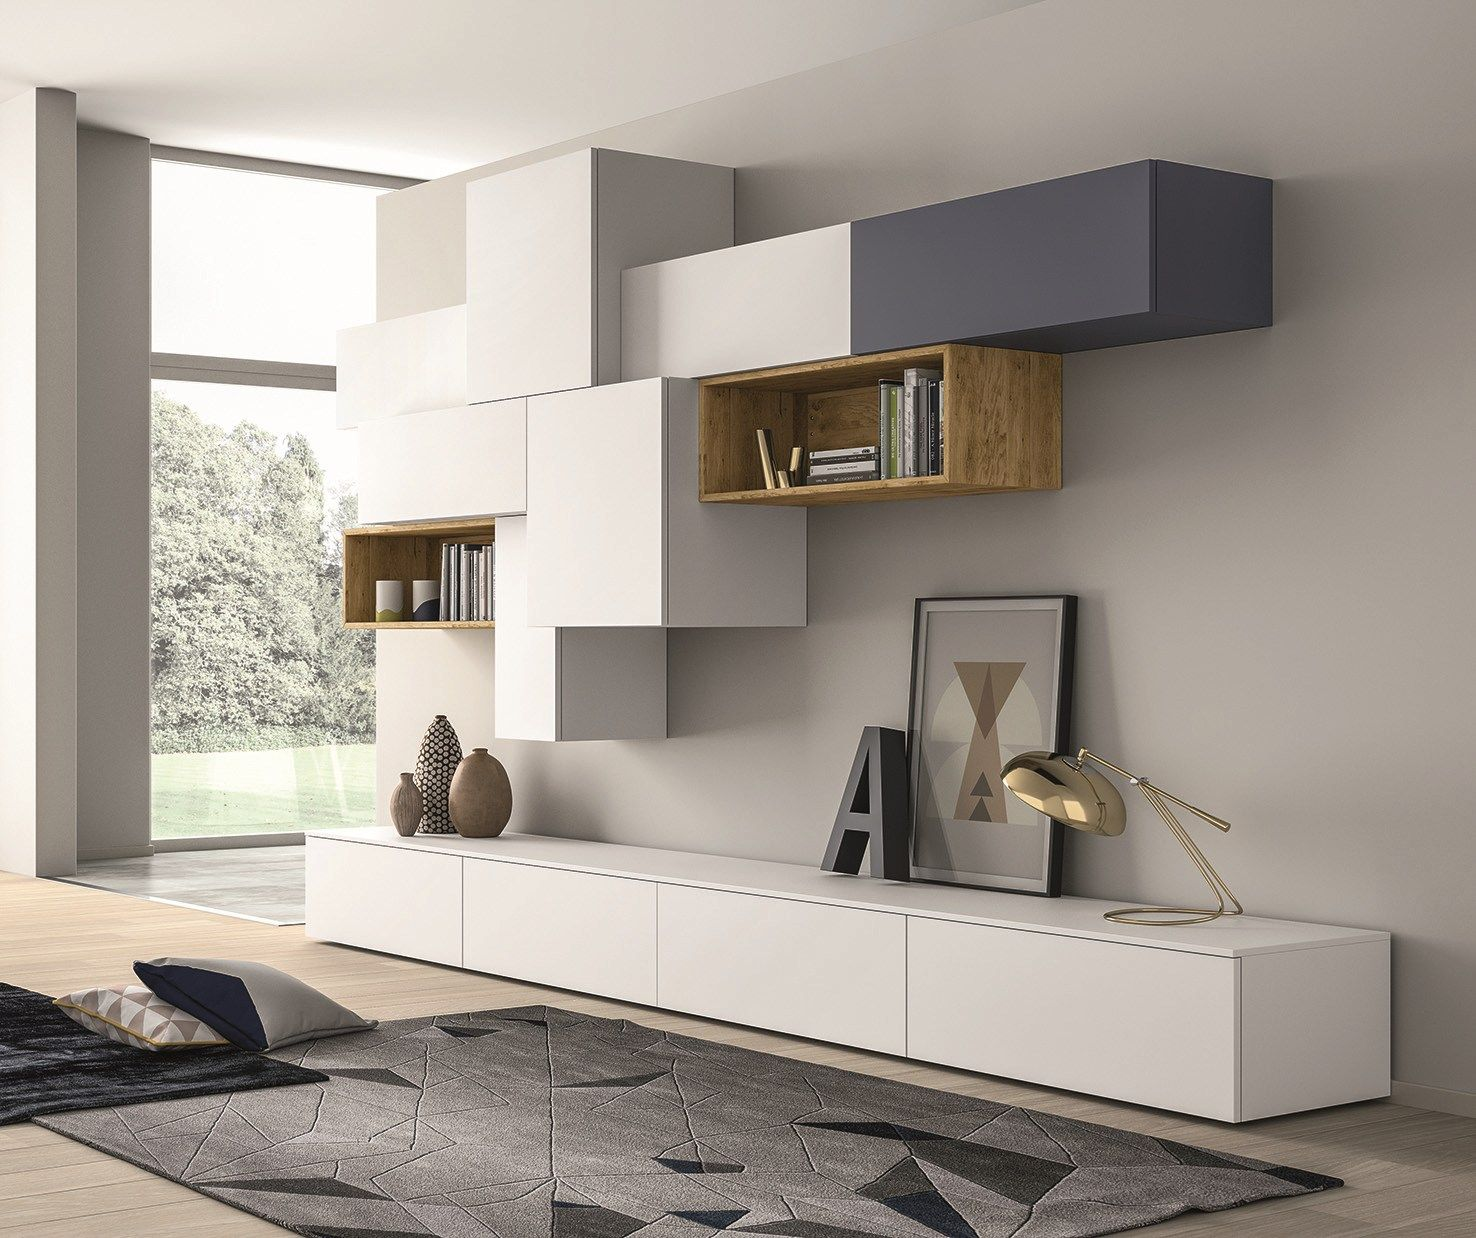 Ikea Muebles Modulares Mueble Modular De Pared Composable Lacado Slim 88 By Dall Agnese